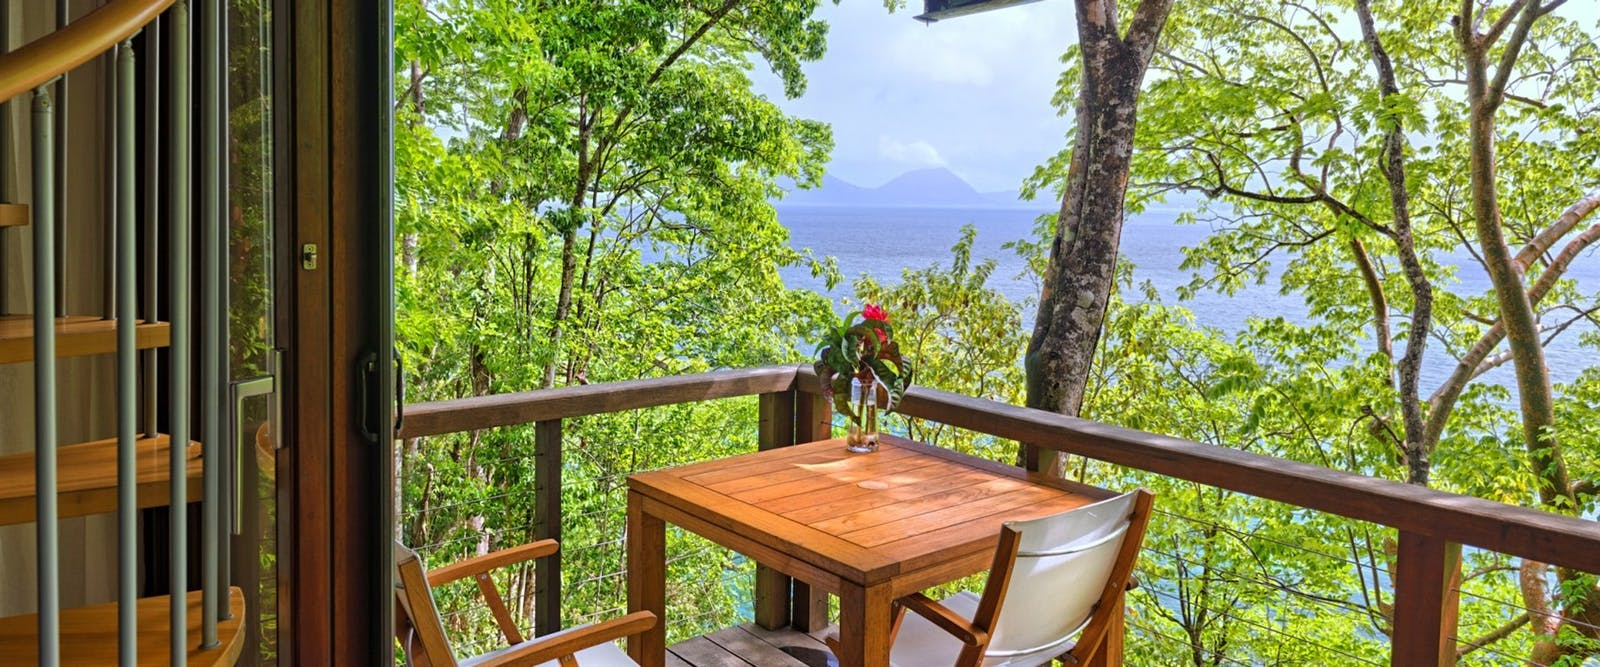 Terrace with Beautiful View at Secret Bay, Dominica